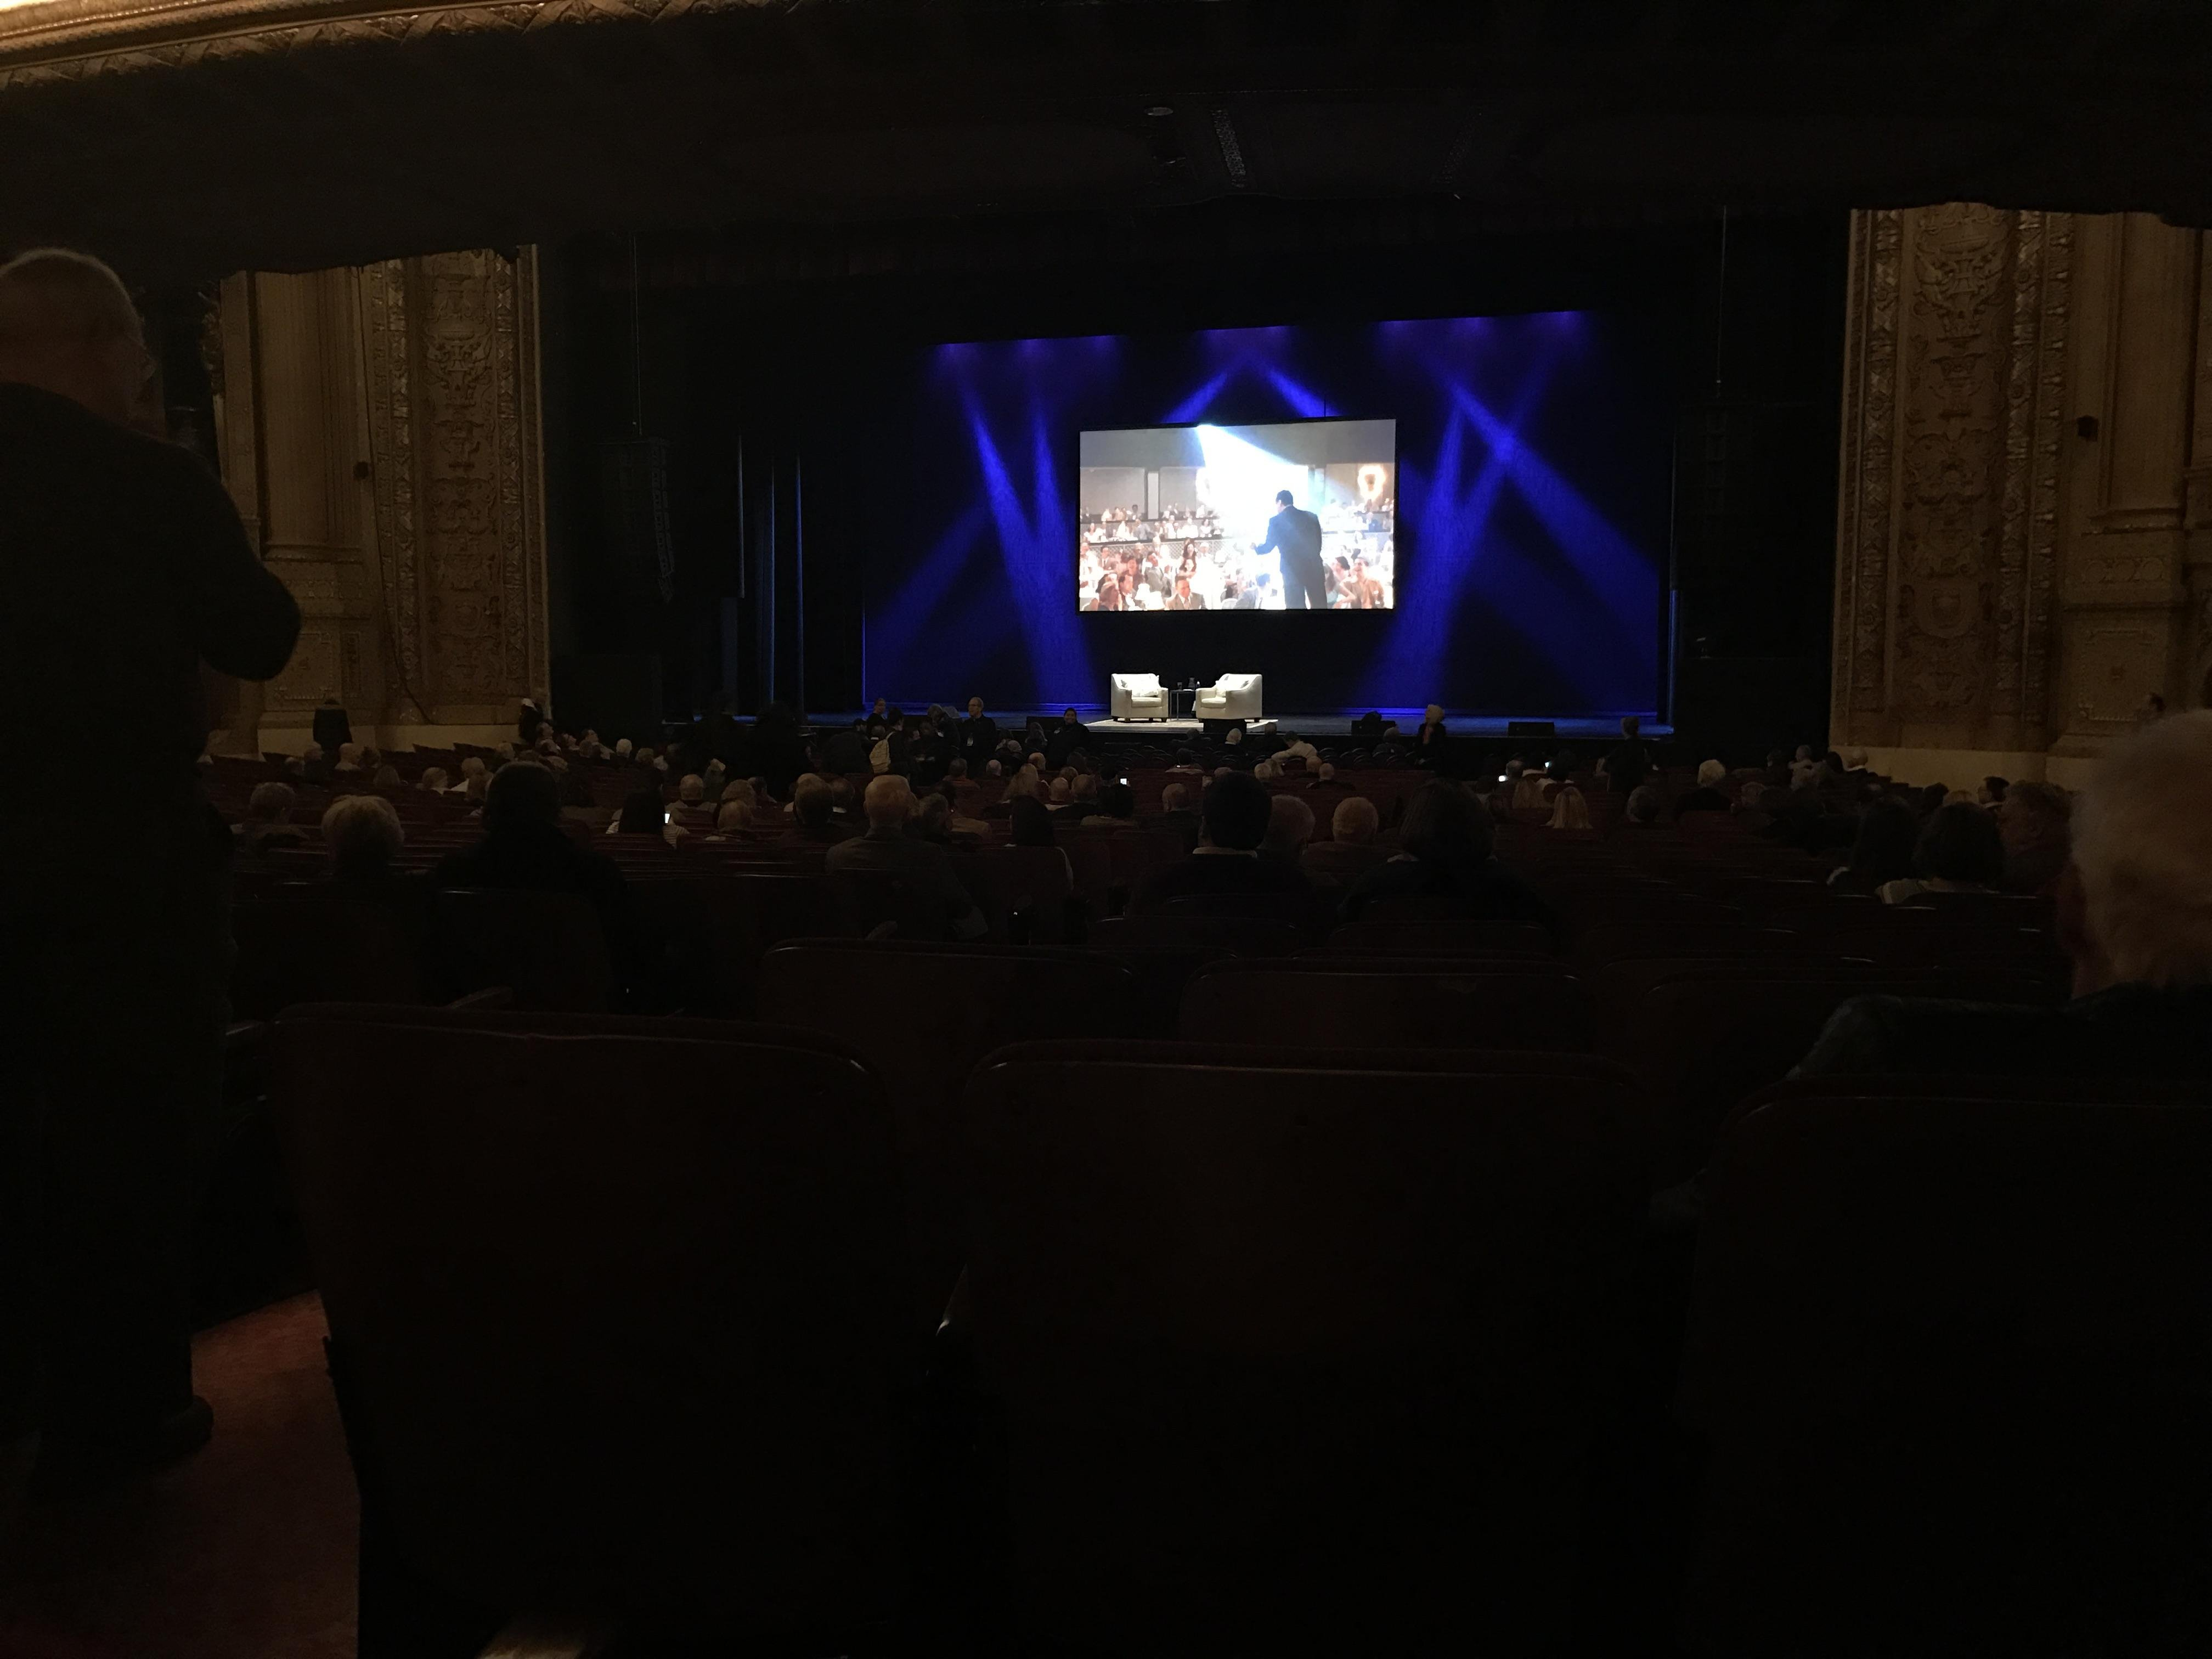 Chicago Theatre Section MNFL3R Row R Seat 302